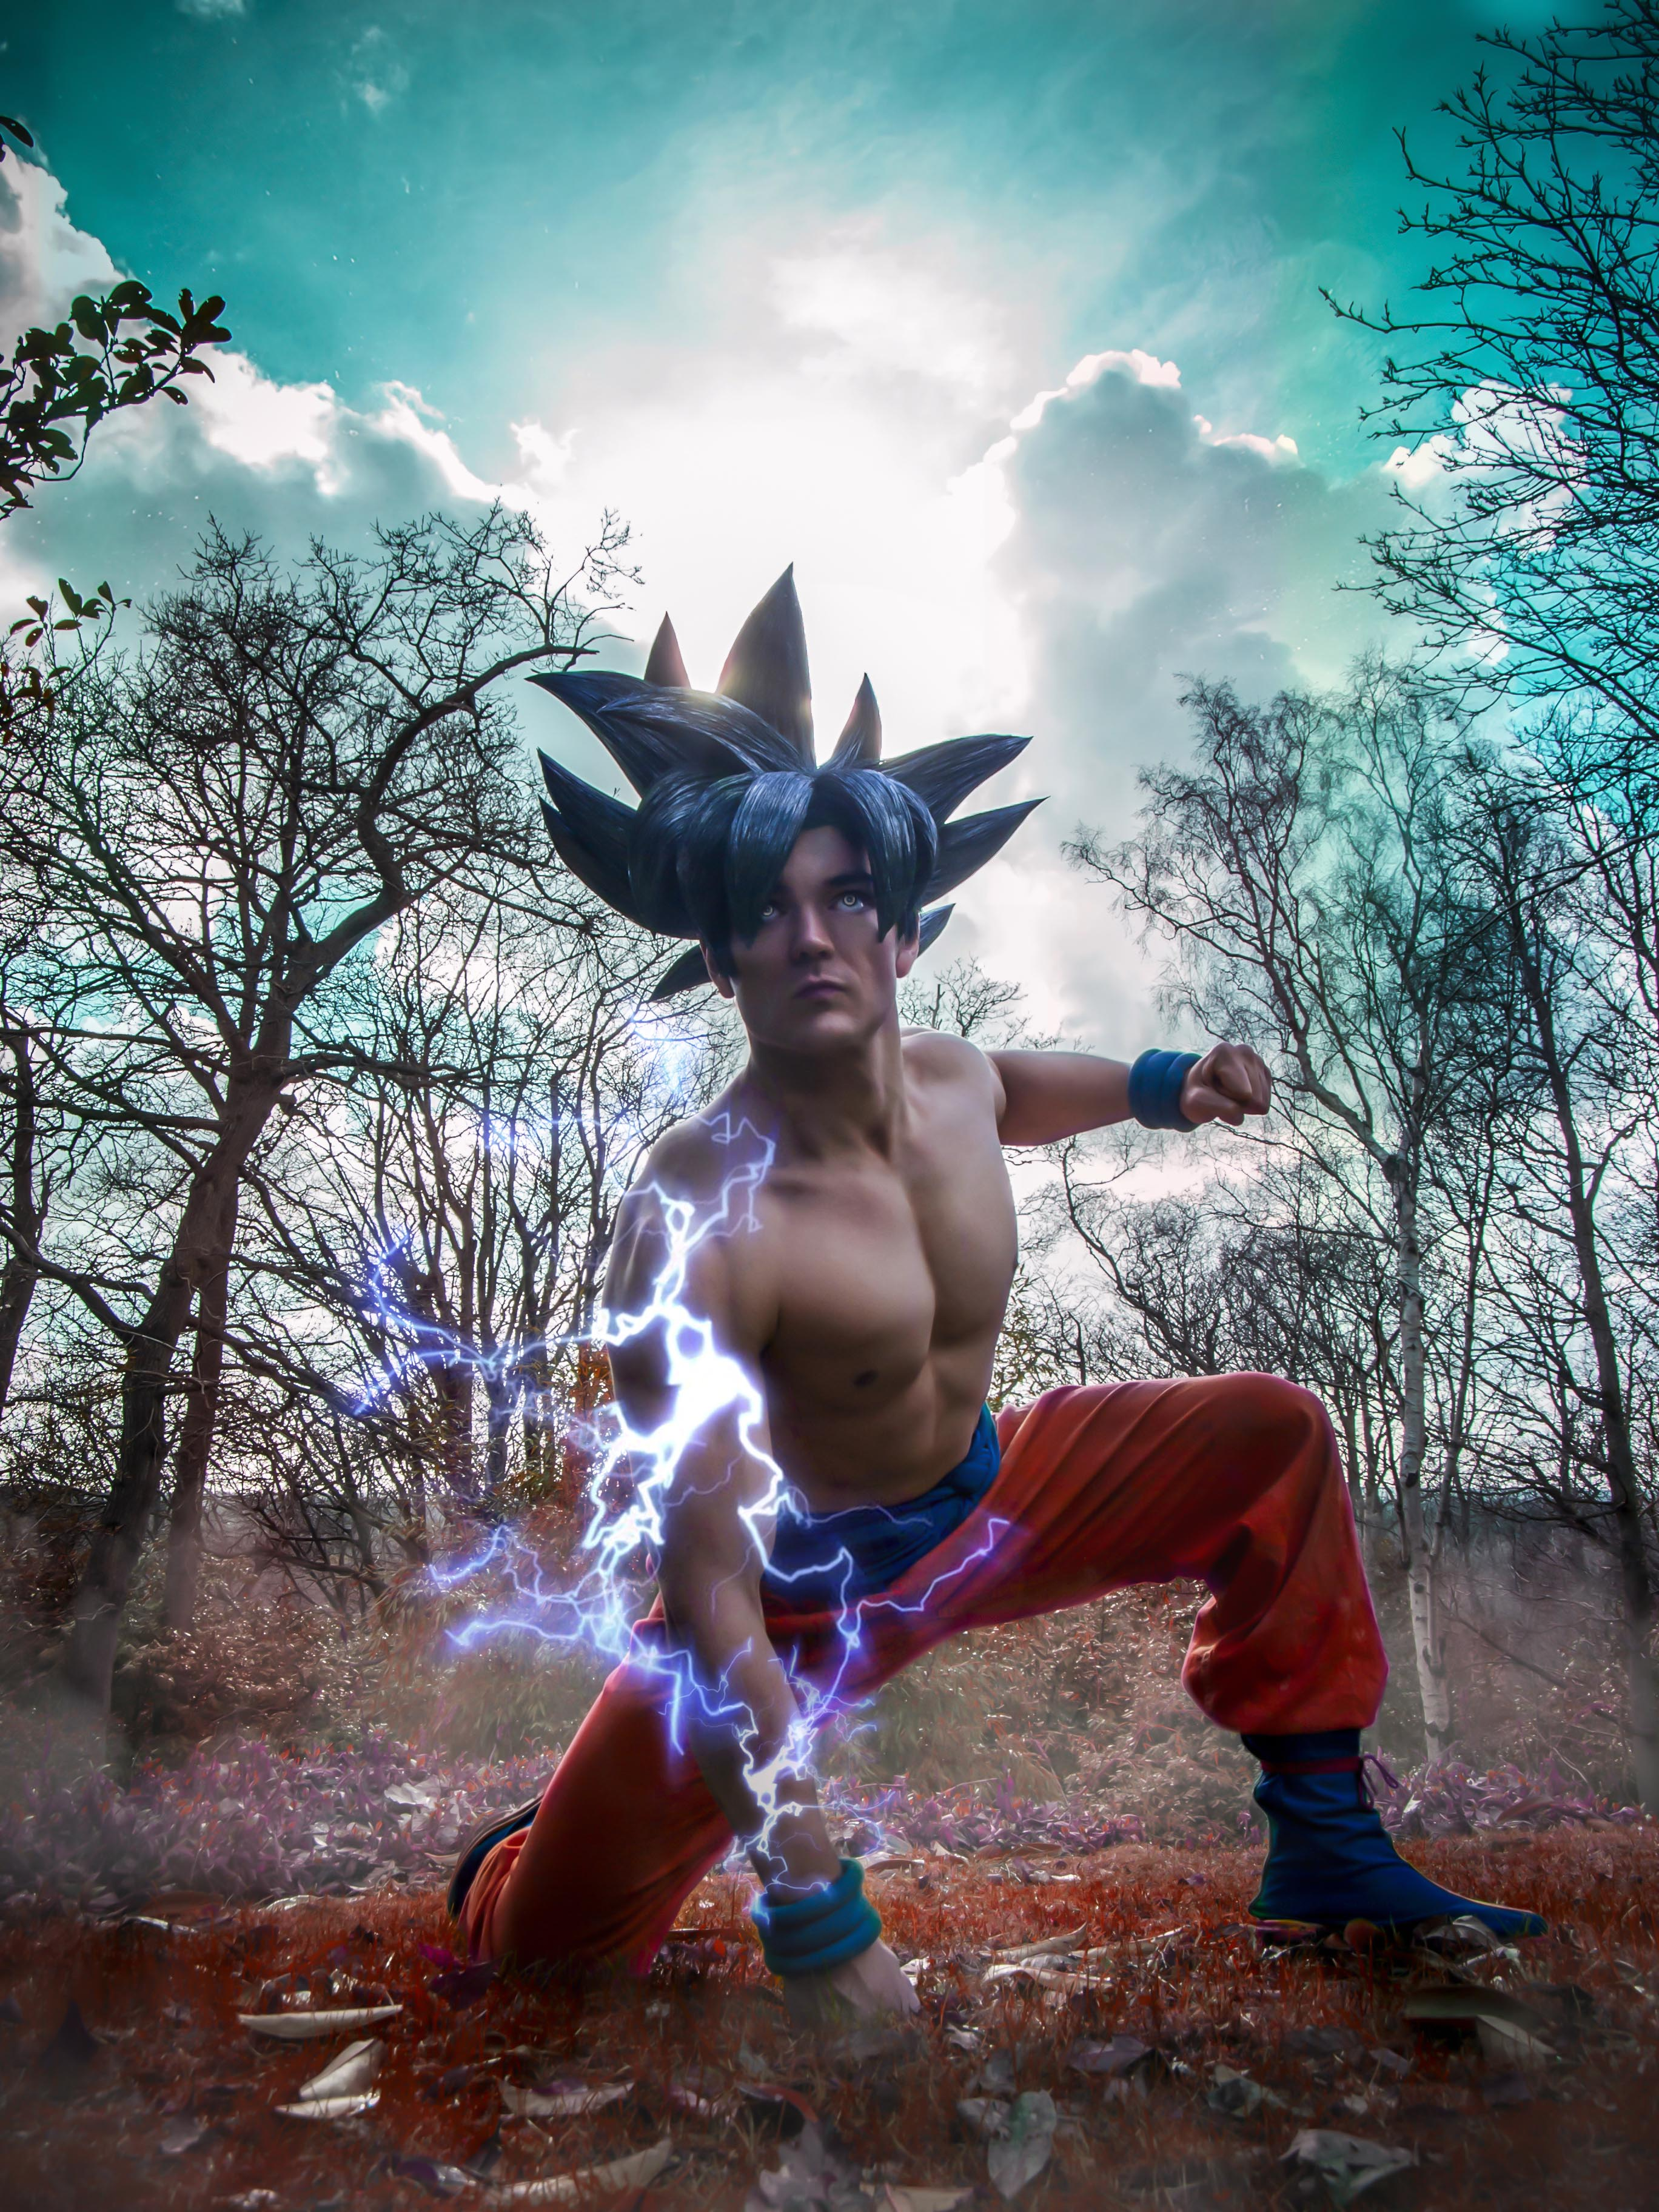 Goku cosplay from dragonball super doing a landing pose